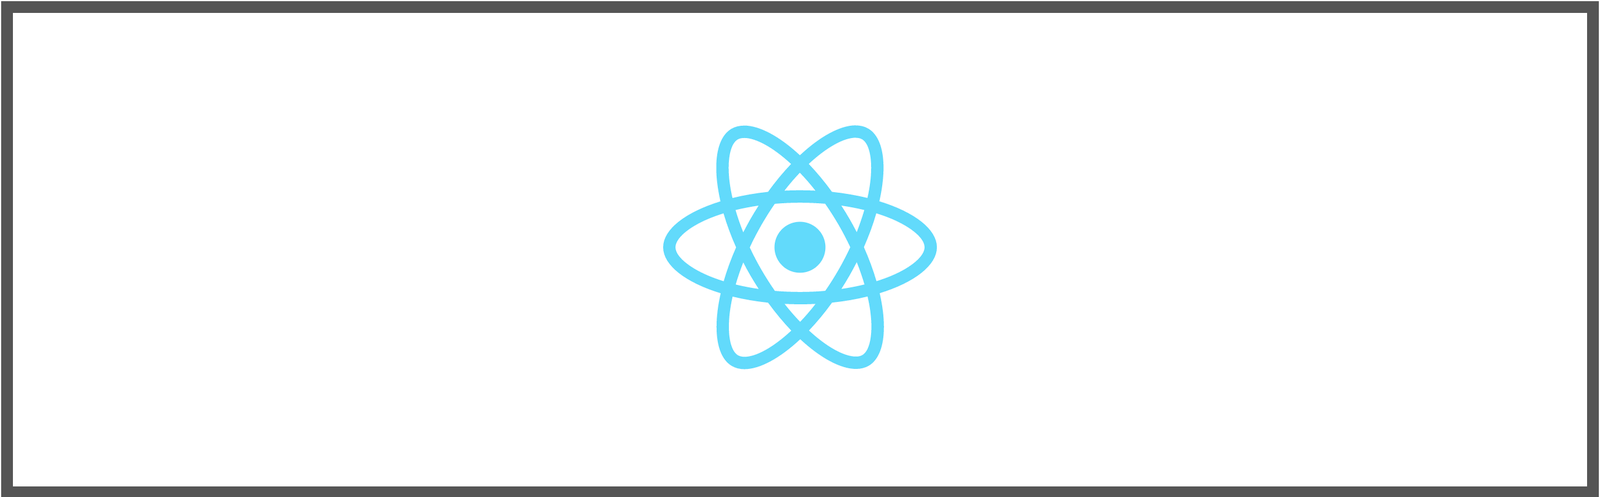 svg react example